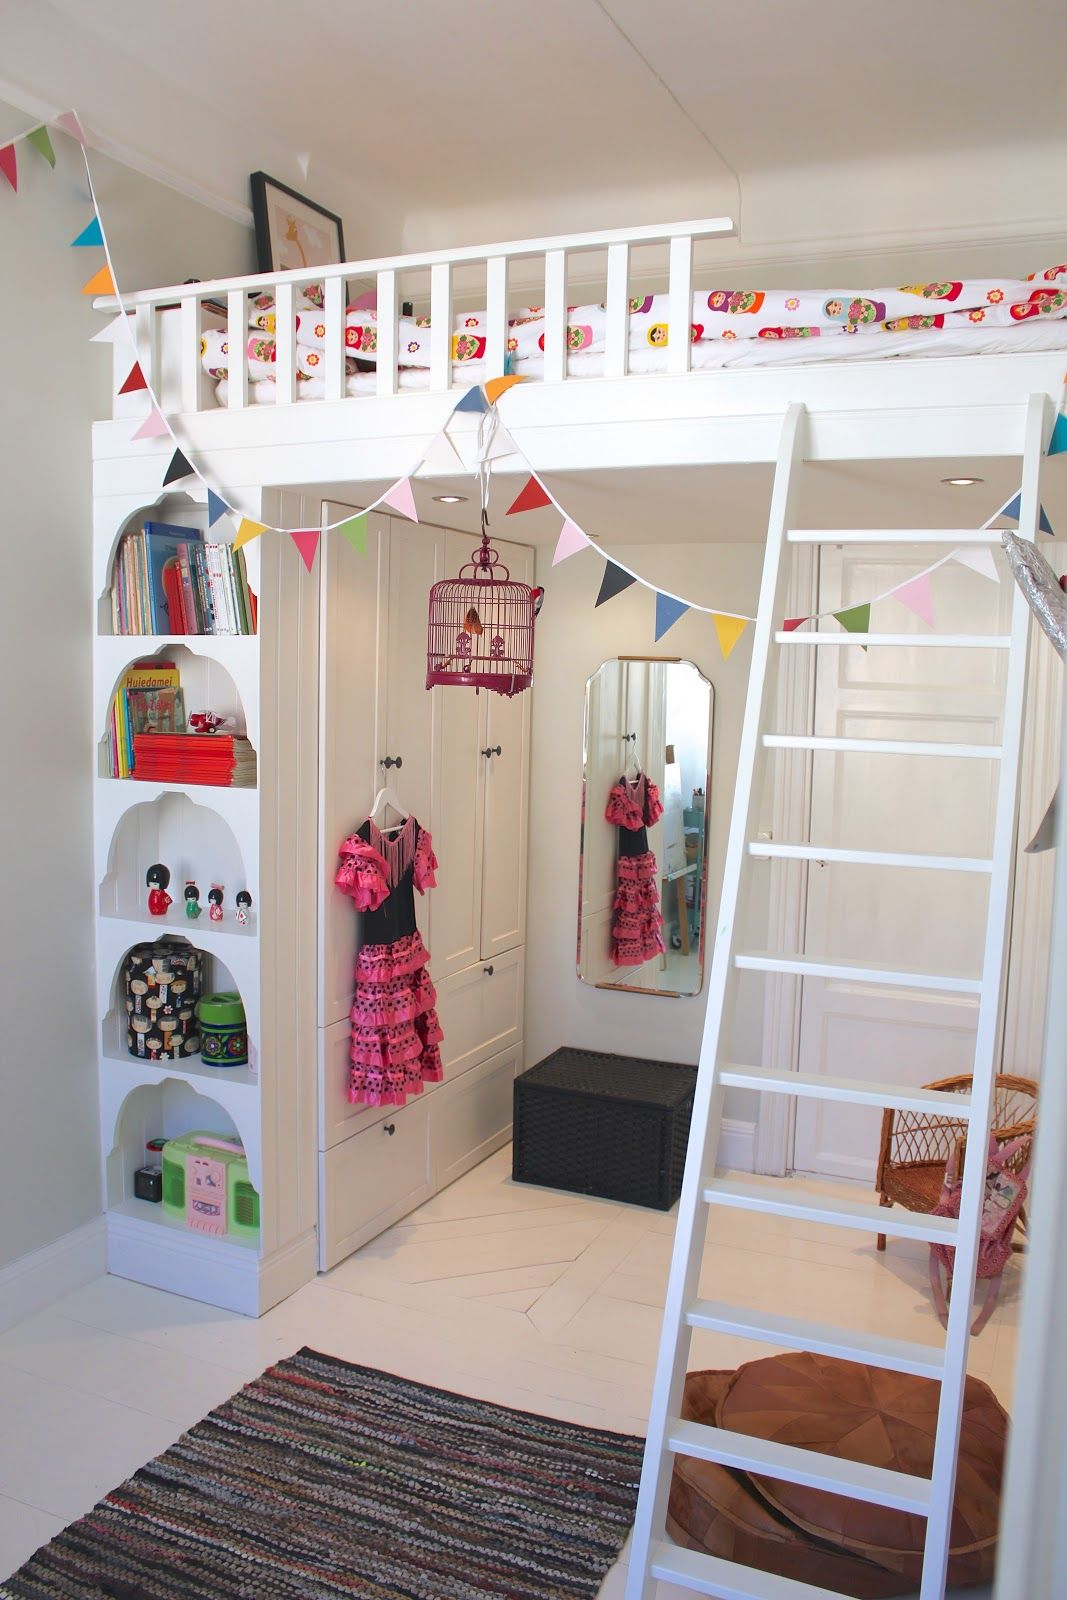 Loft bed ideas for small spaces  Awesome loft space for a small room  Beauty  Pinterest  Loft